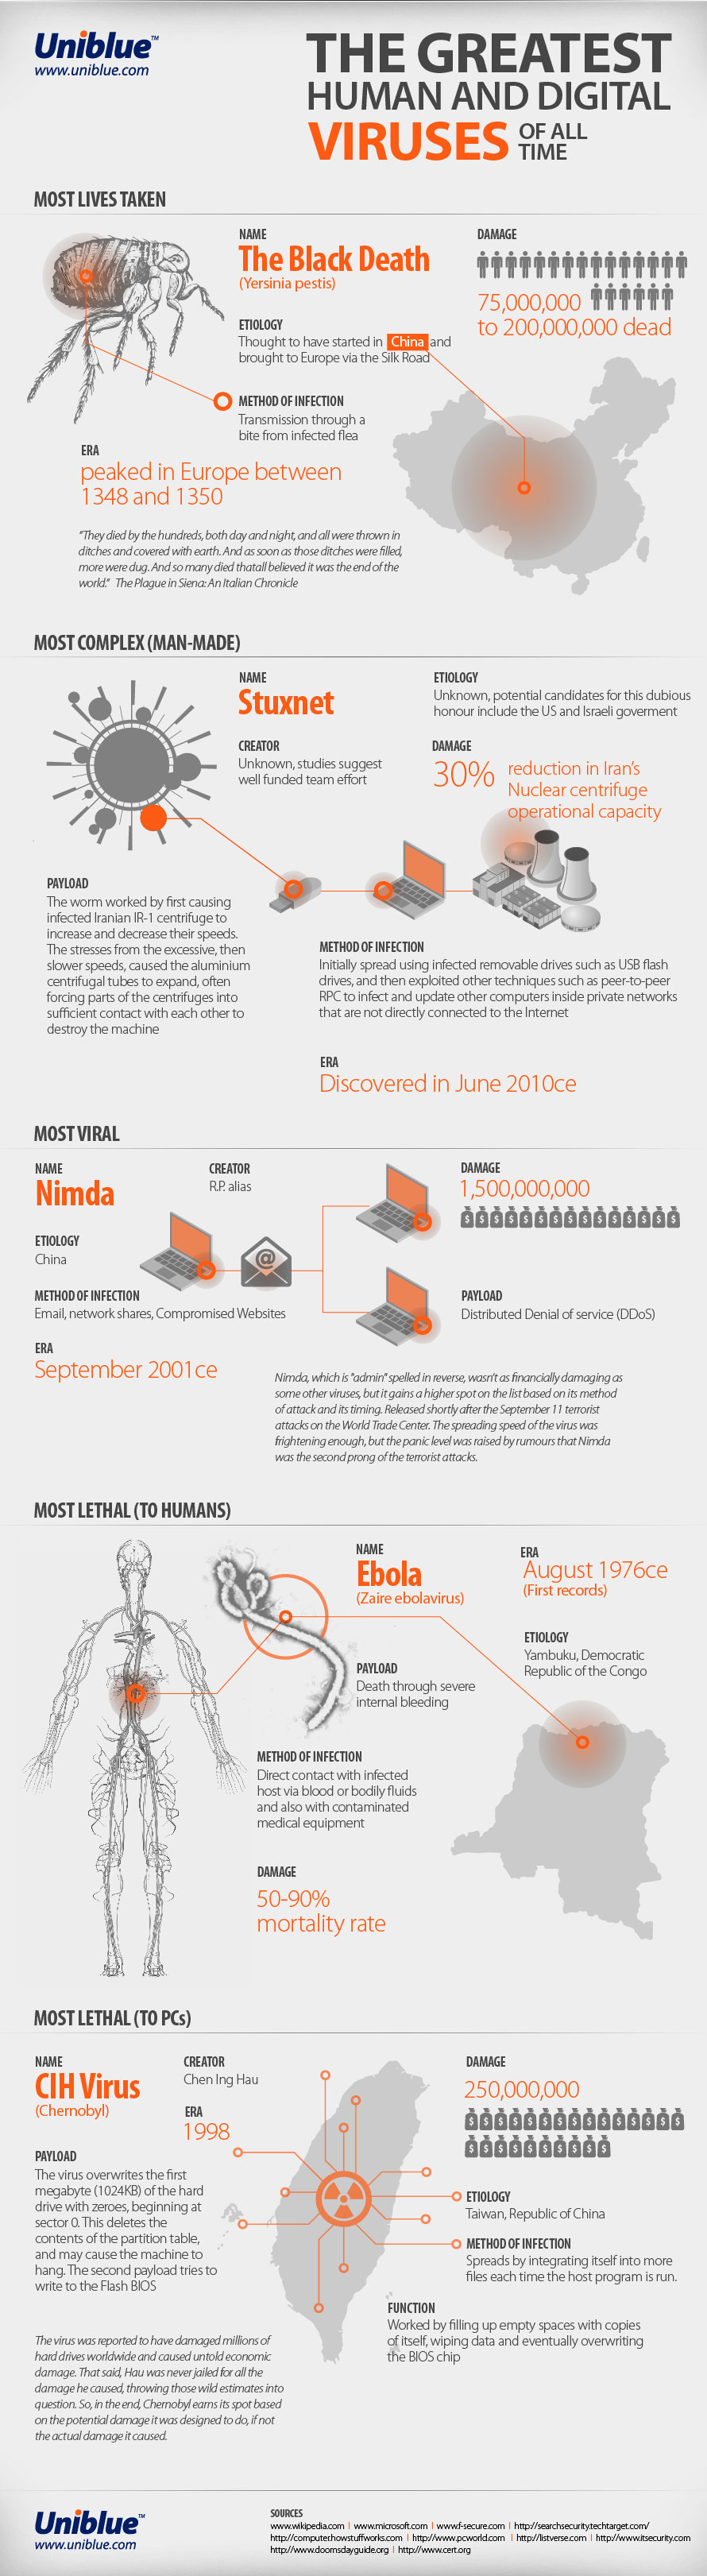 The Top Human and Digital Viruses